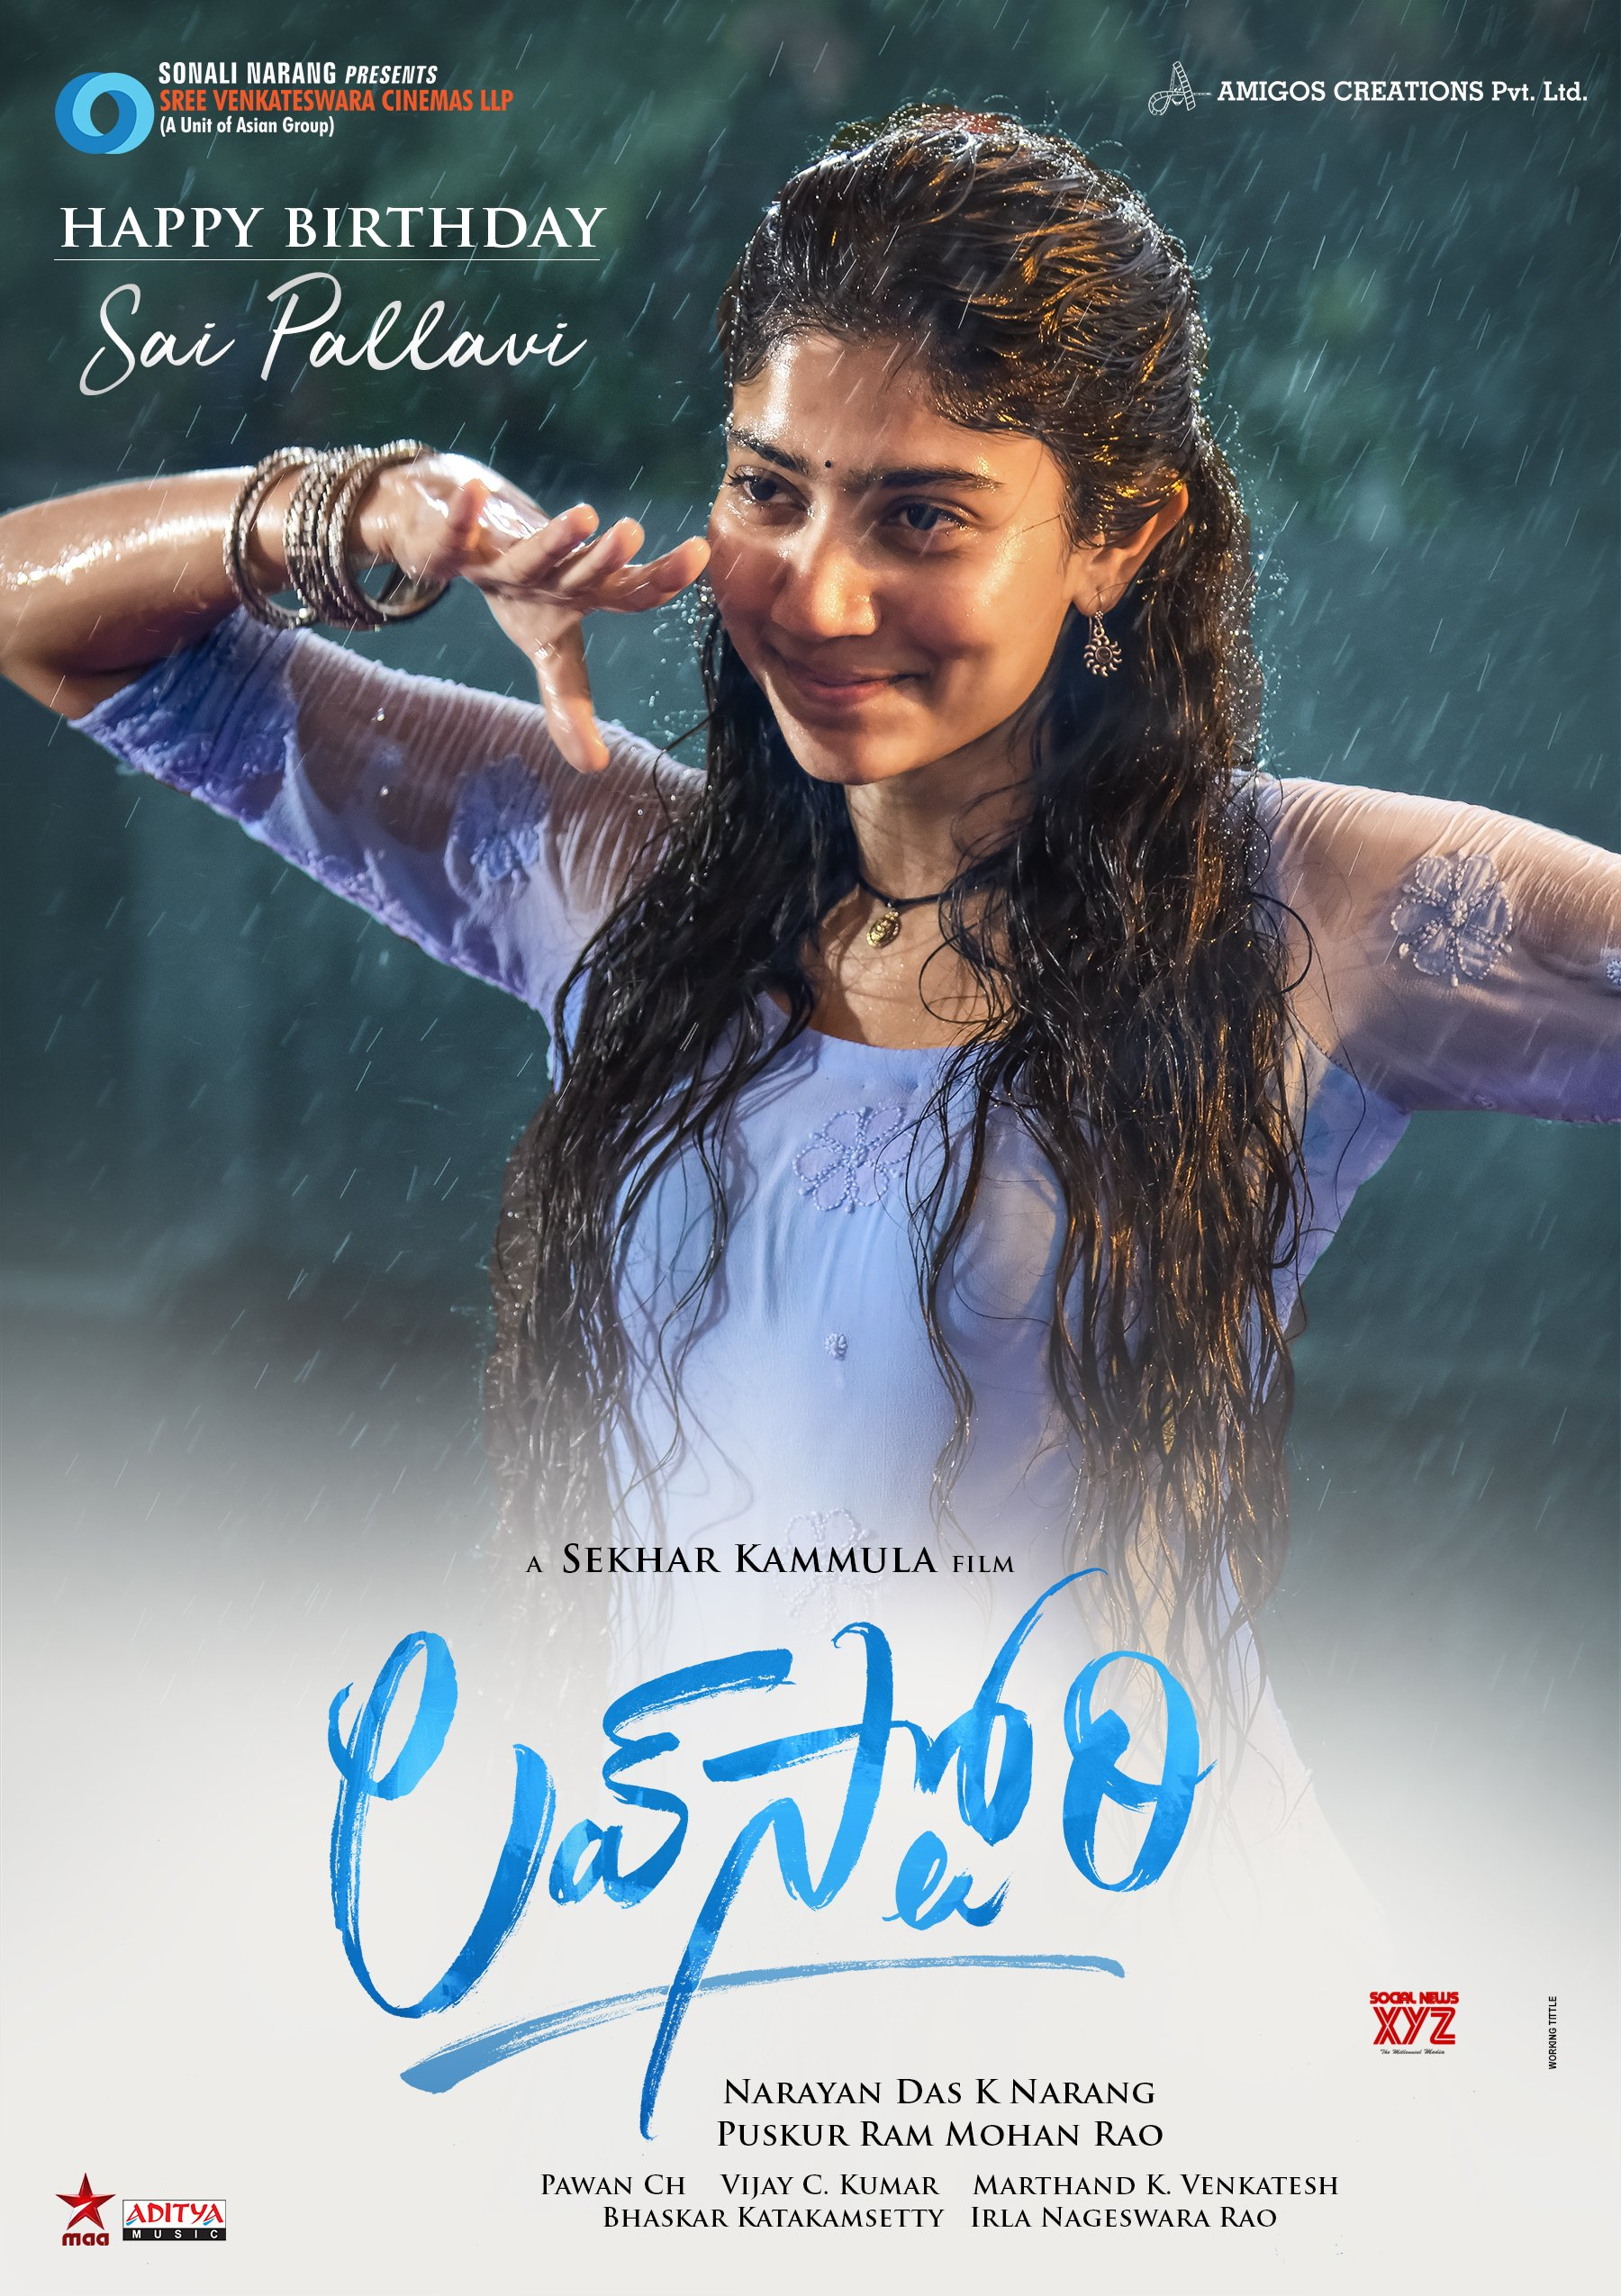 Sai Pallavi Birthday Poster From Love Story Is Out Social News Xyz